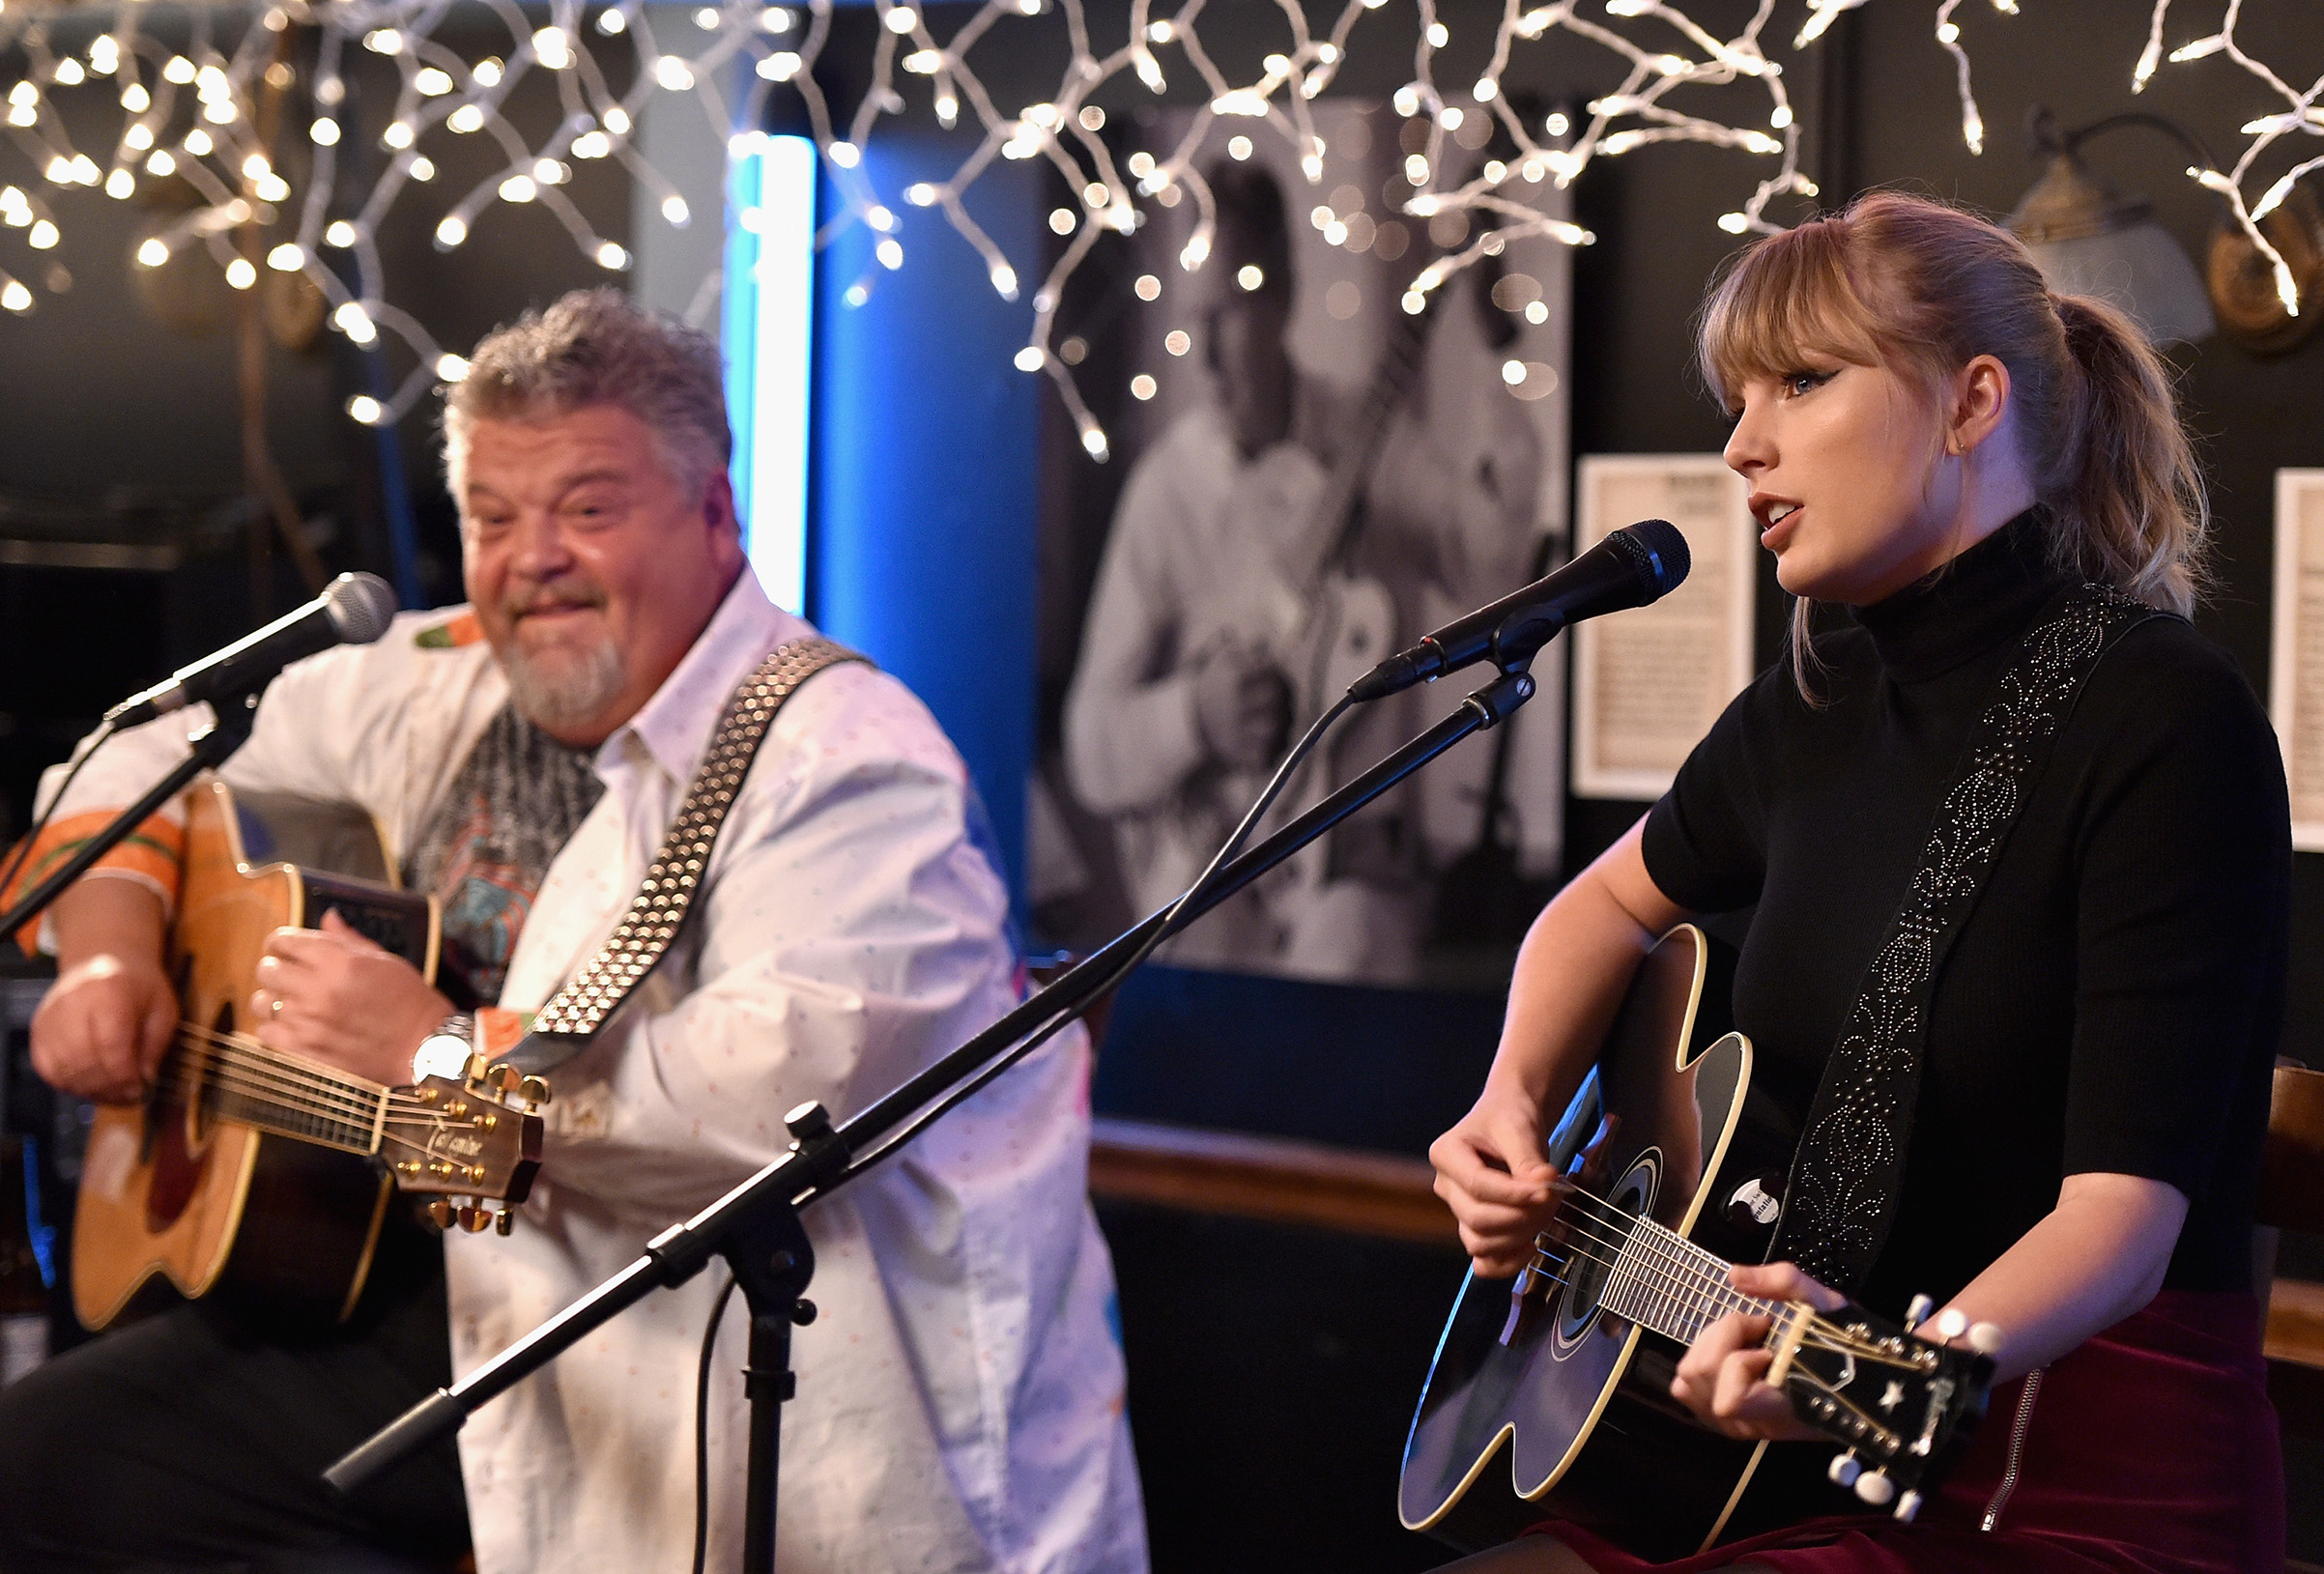 Craig Wiseman and special guest Taylor Swift perform onstage at Bluebird Cafe on March 31, 2018 in Nashville.